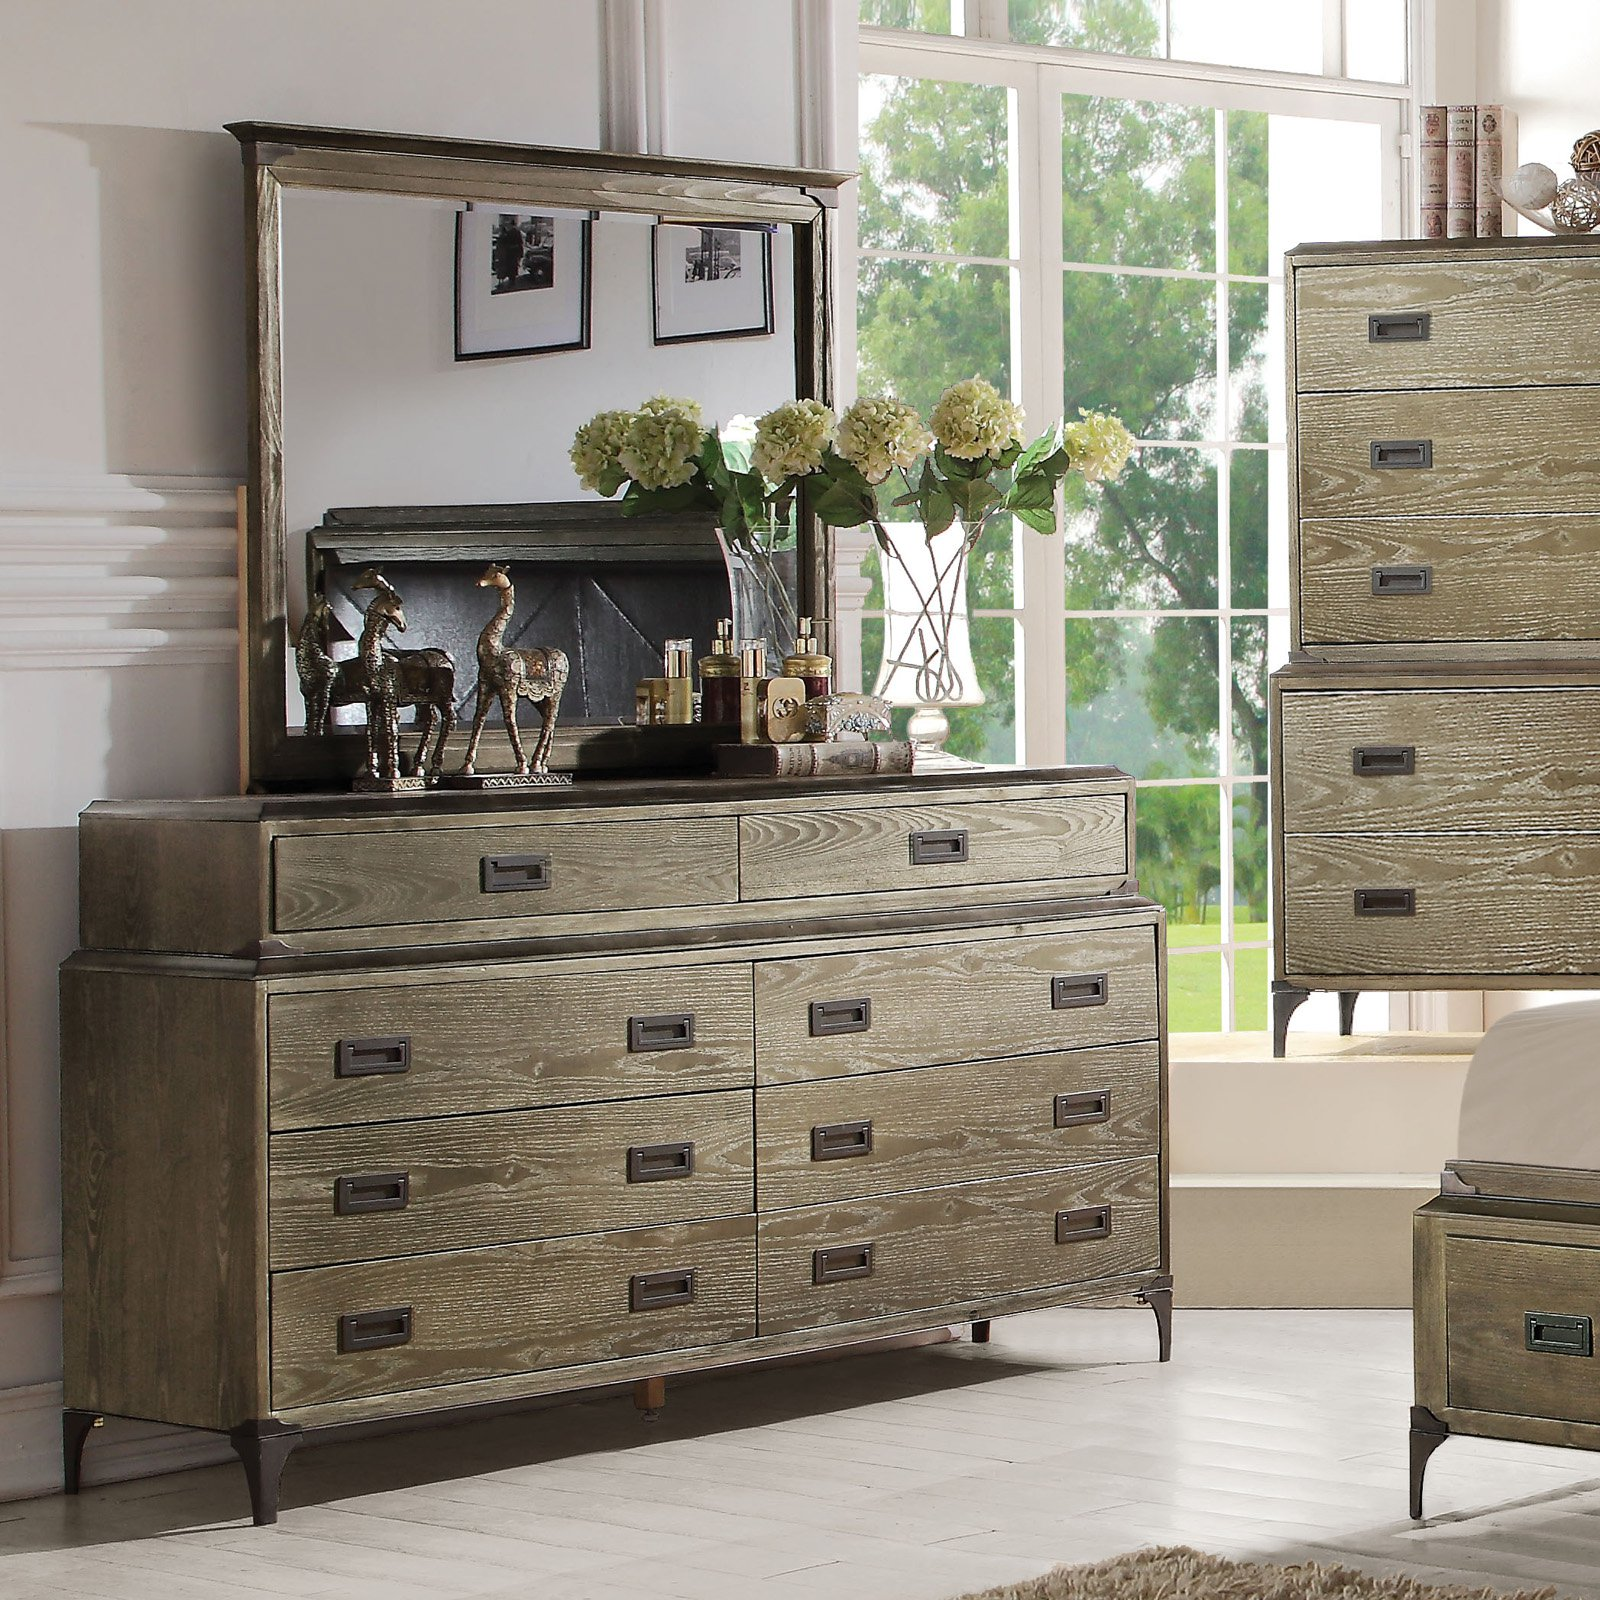 Acme Furniture Athouman Weathered Oak 8 Drawer Dresser with Optional Mirror